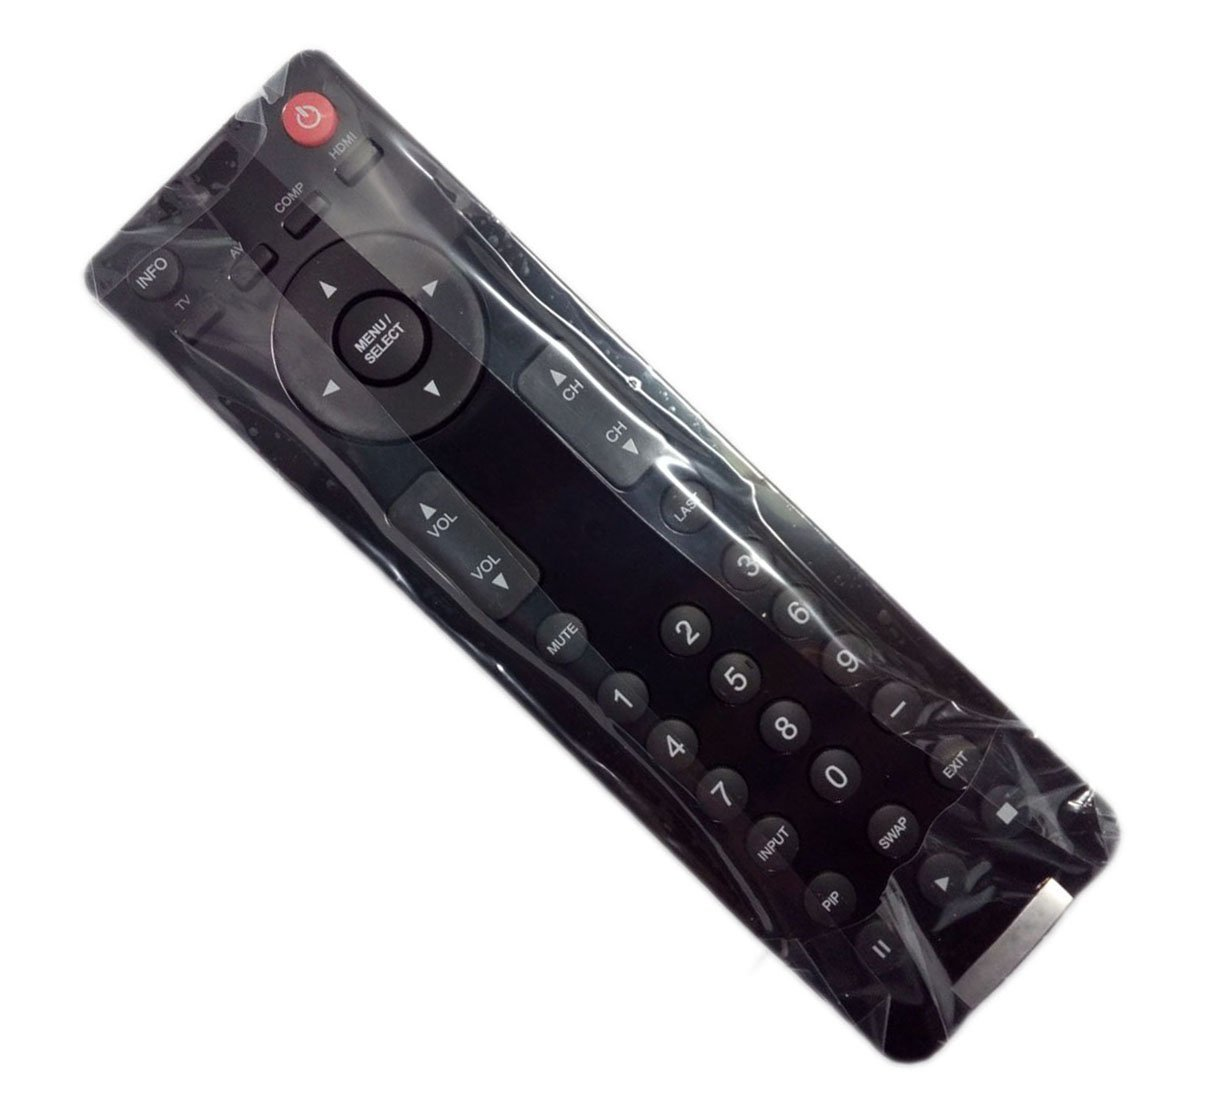 Cheap Lcd Tv Guide, find Lcd Tv Guide deals on line at